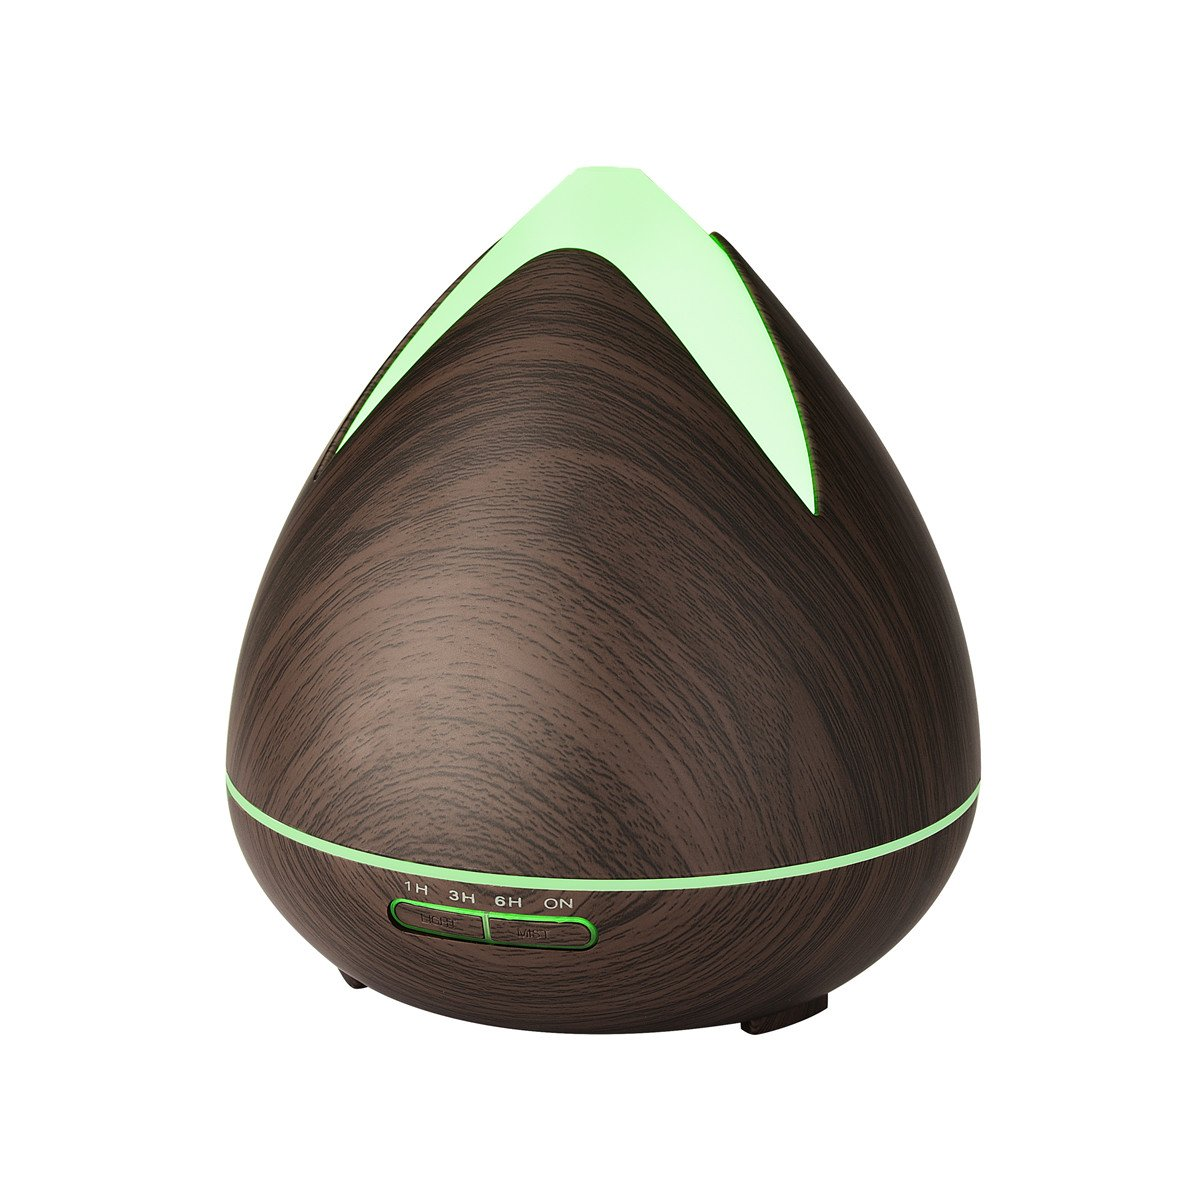 Di'omani Essential Oil Diffuser Large Humidifier Purifier 400ml Quiet Mist Aromatherapy Ultrasonic Relaxing 7 Color Changing LED Lights Safe Auto Shut-off For Baby Kids Office Home - Wood Grain